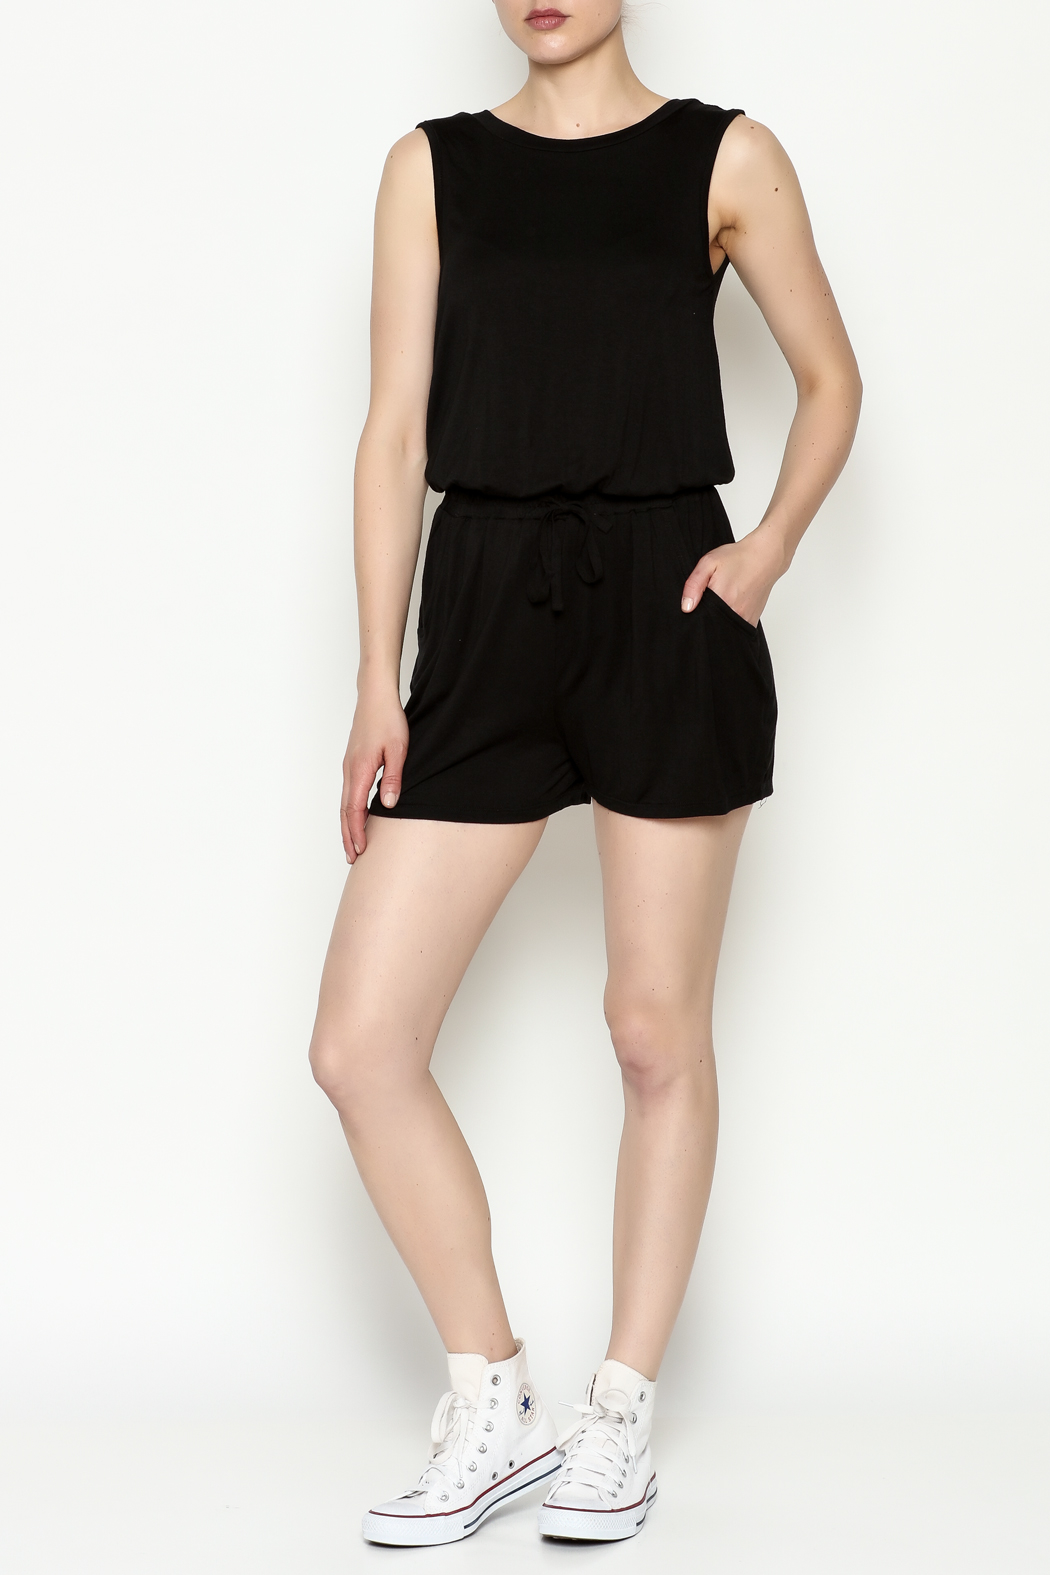 Olive & Oak Black Sleeveless Romper - Side Cropped Image